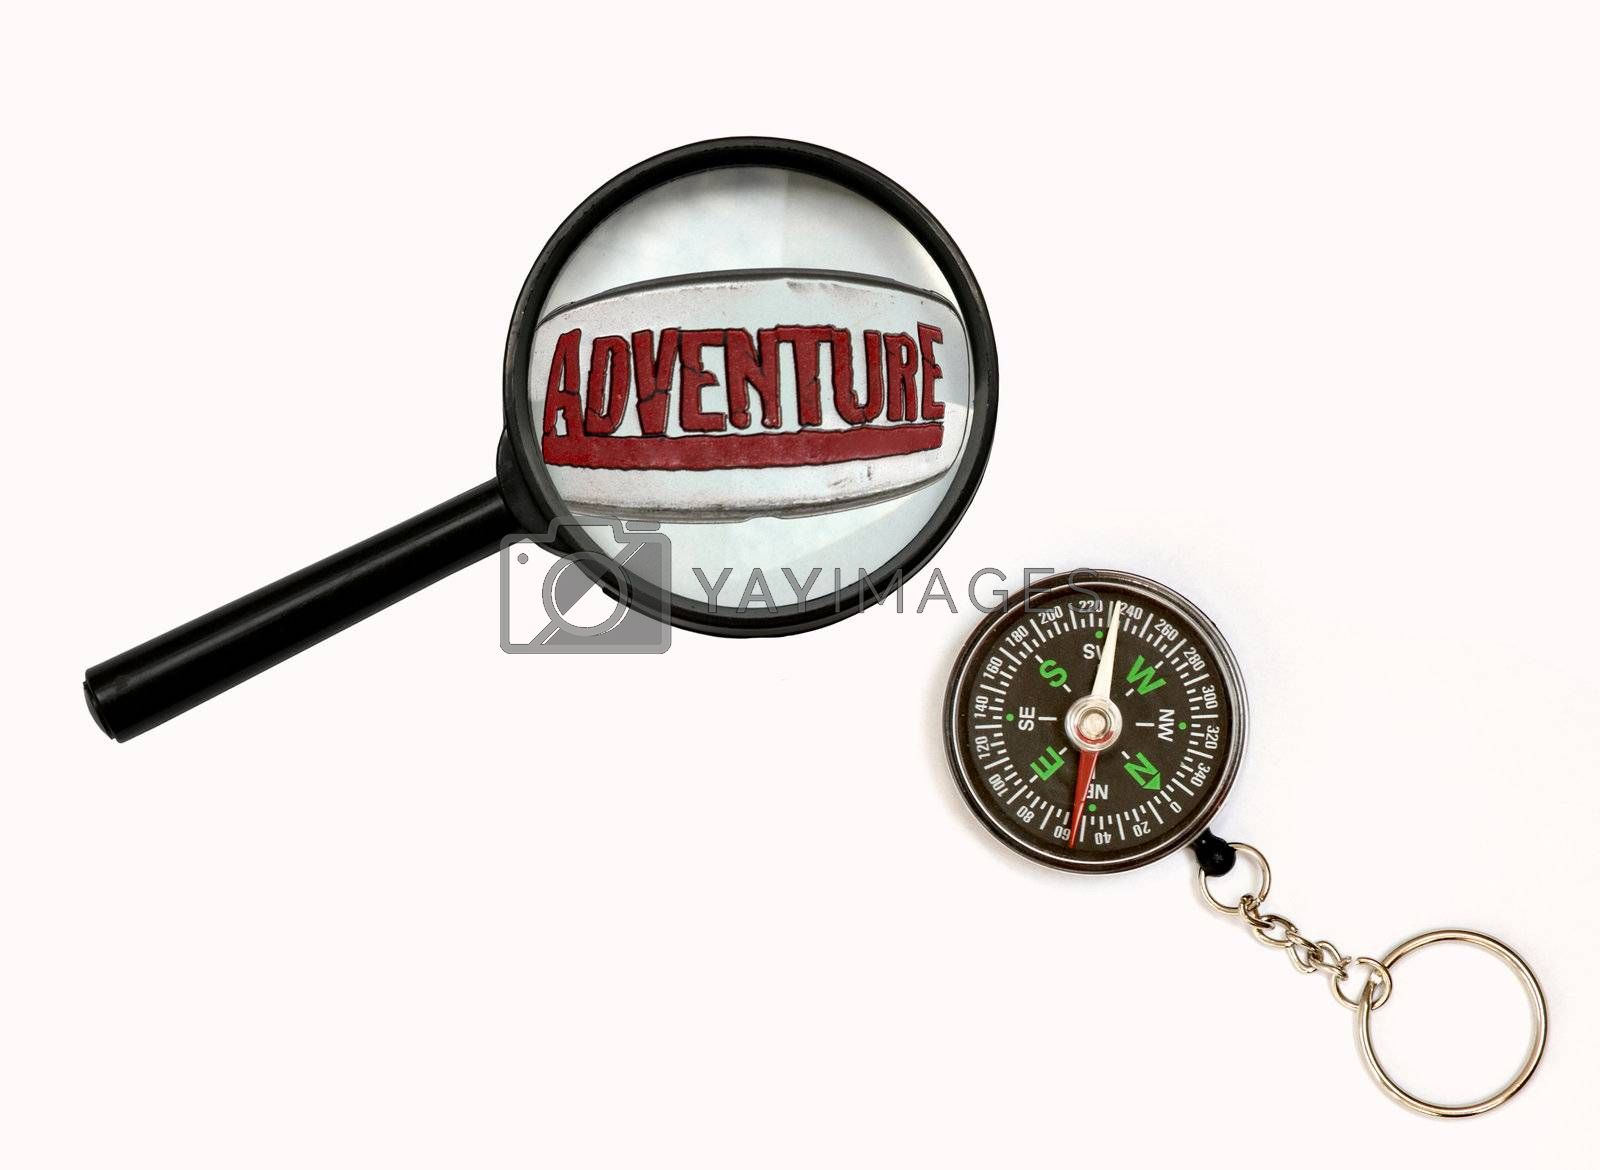 An image of magnifier and compass